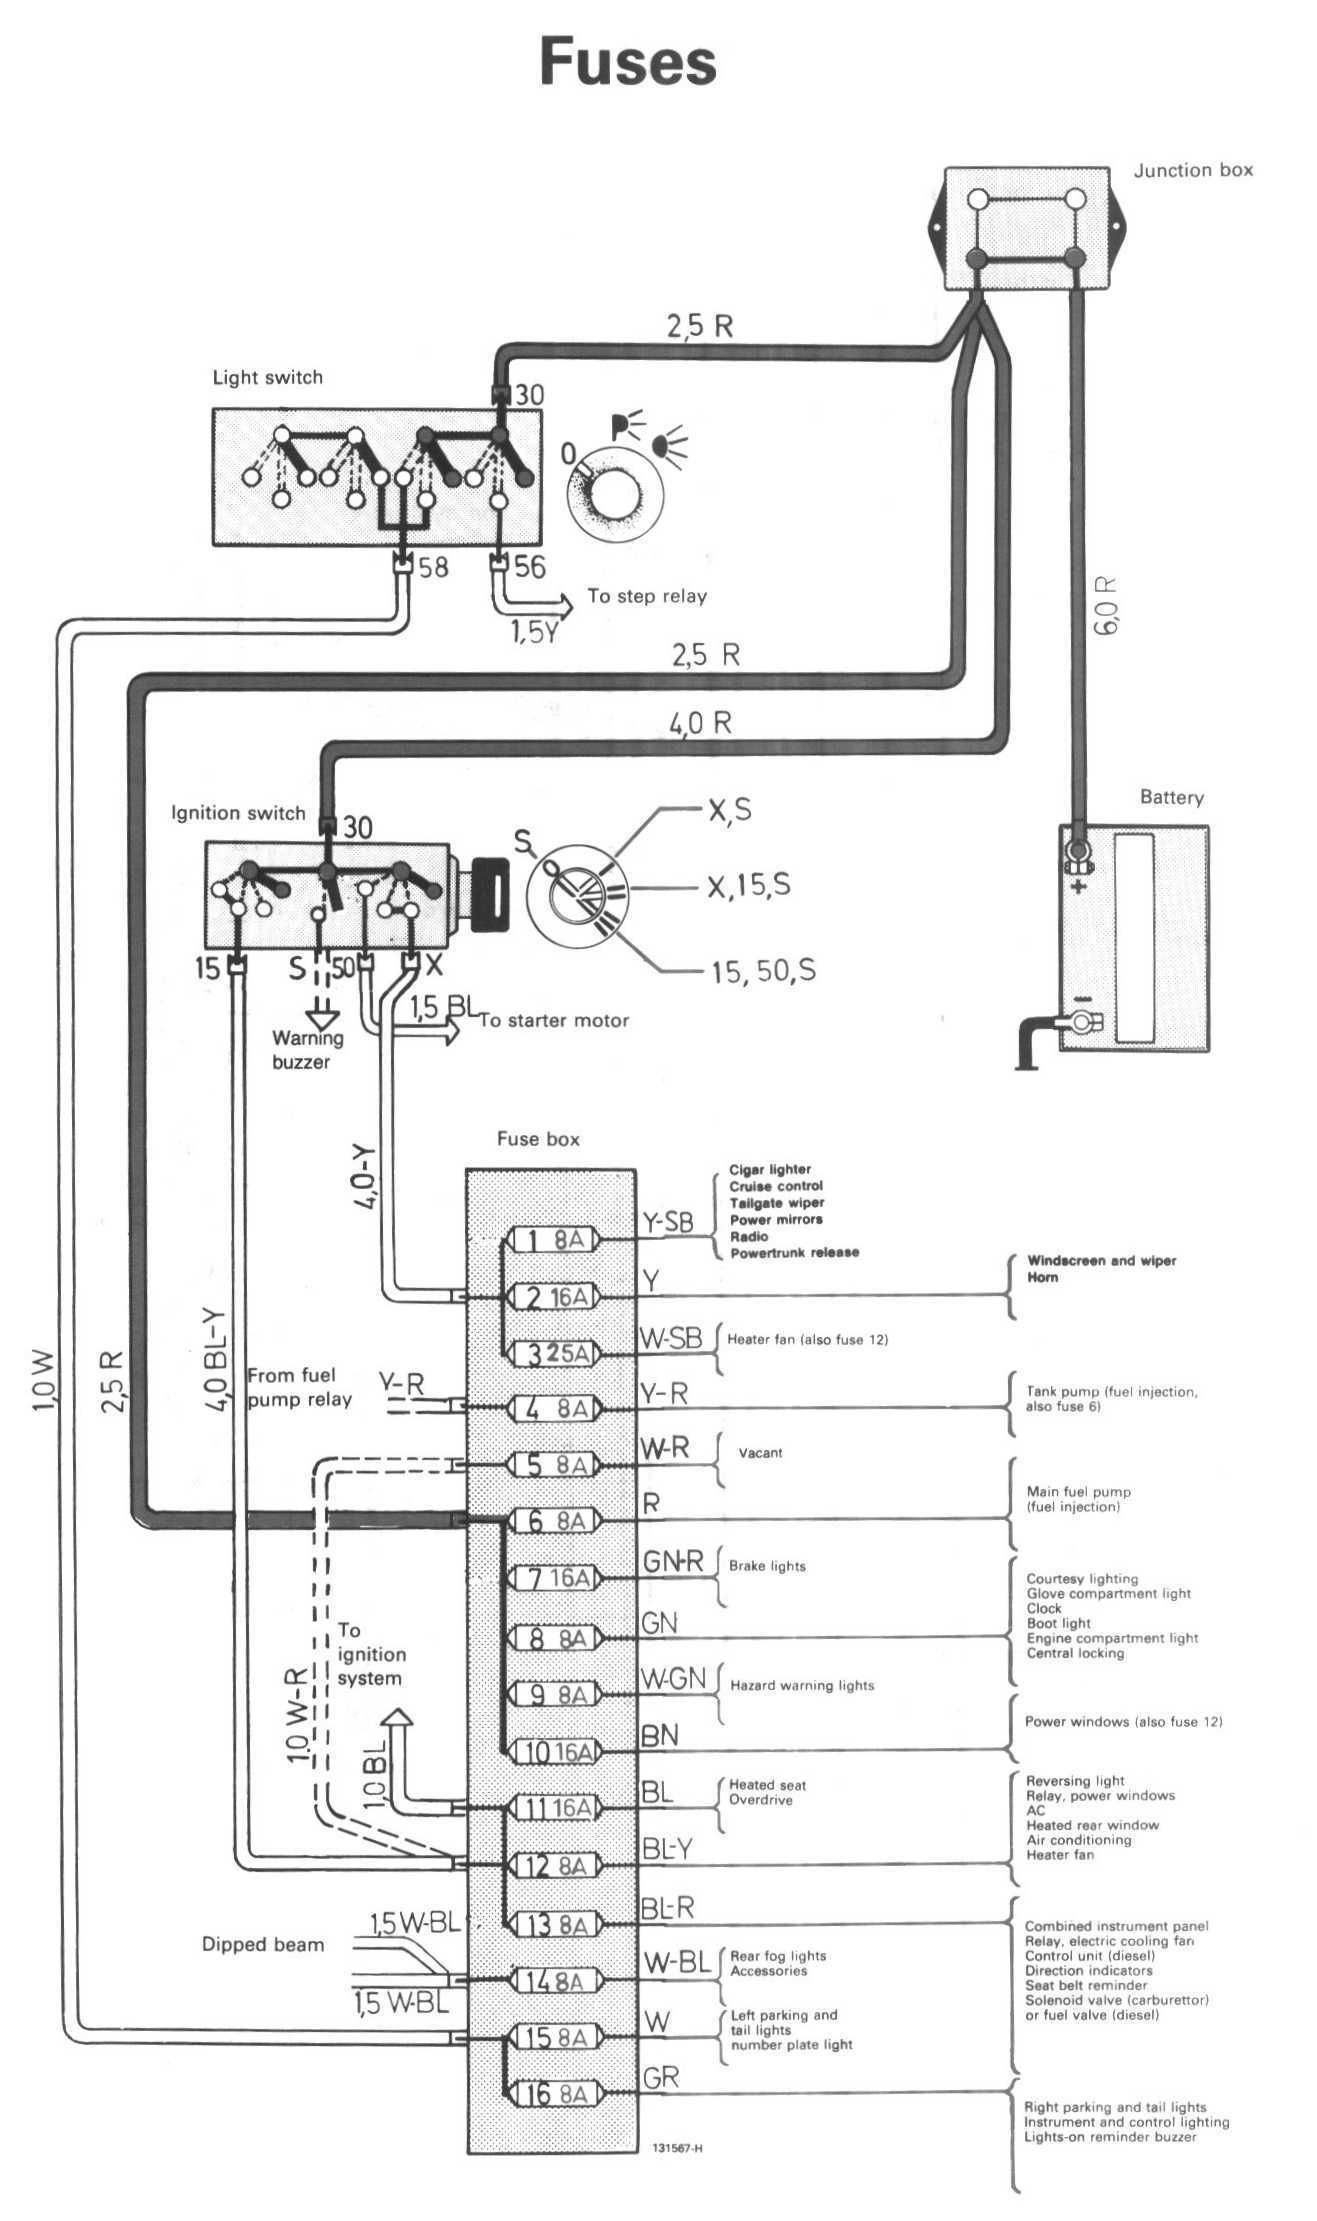 volvo 240 wiring diagram 1988 1993 volvo 240 fuse diagram wiring diagram data  volvo 240 fuse diagram wiring diagram